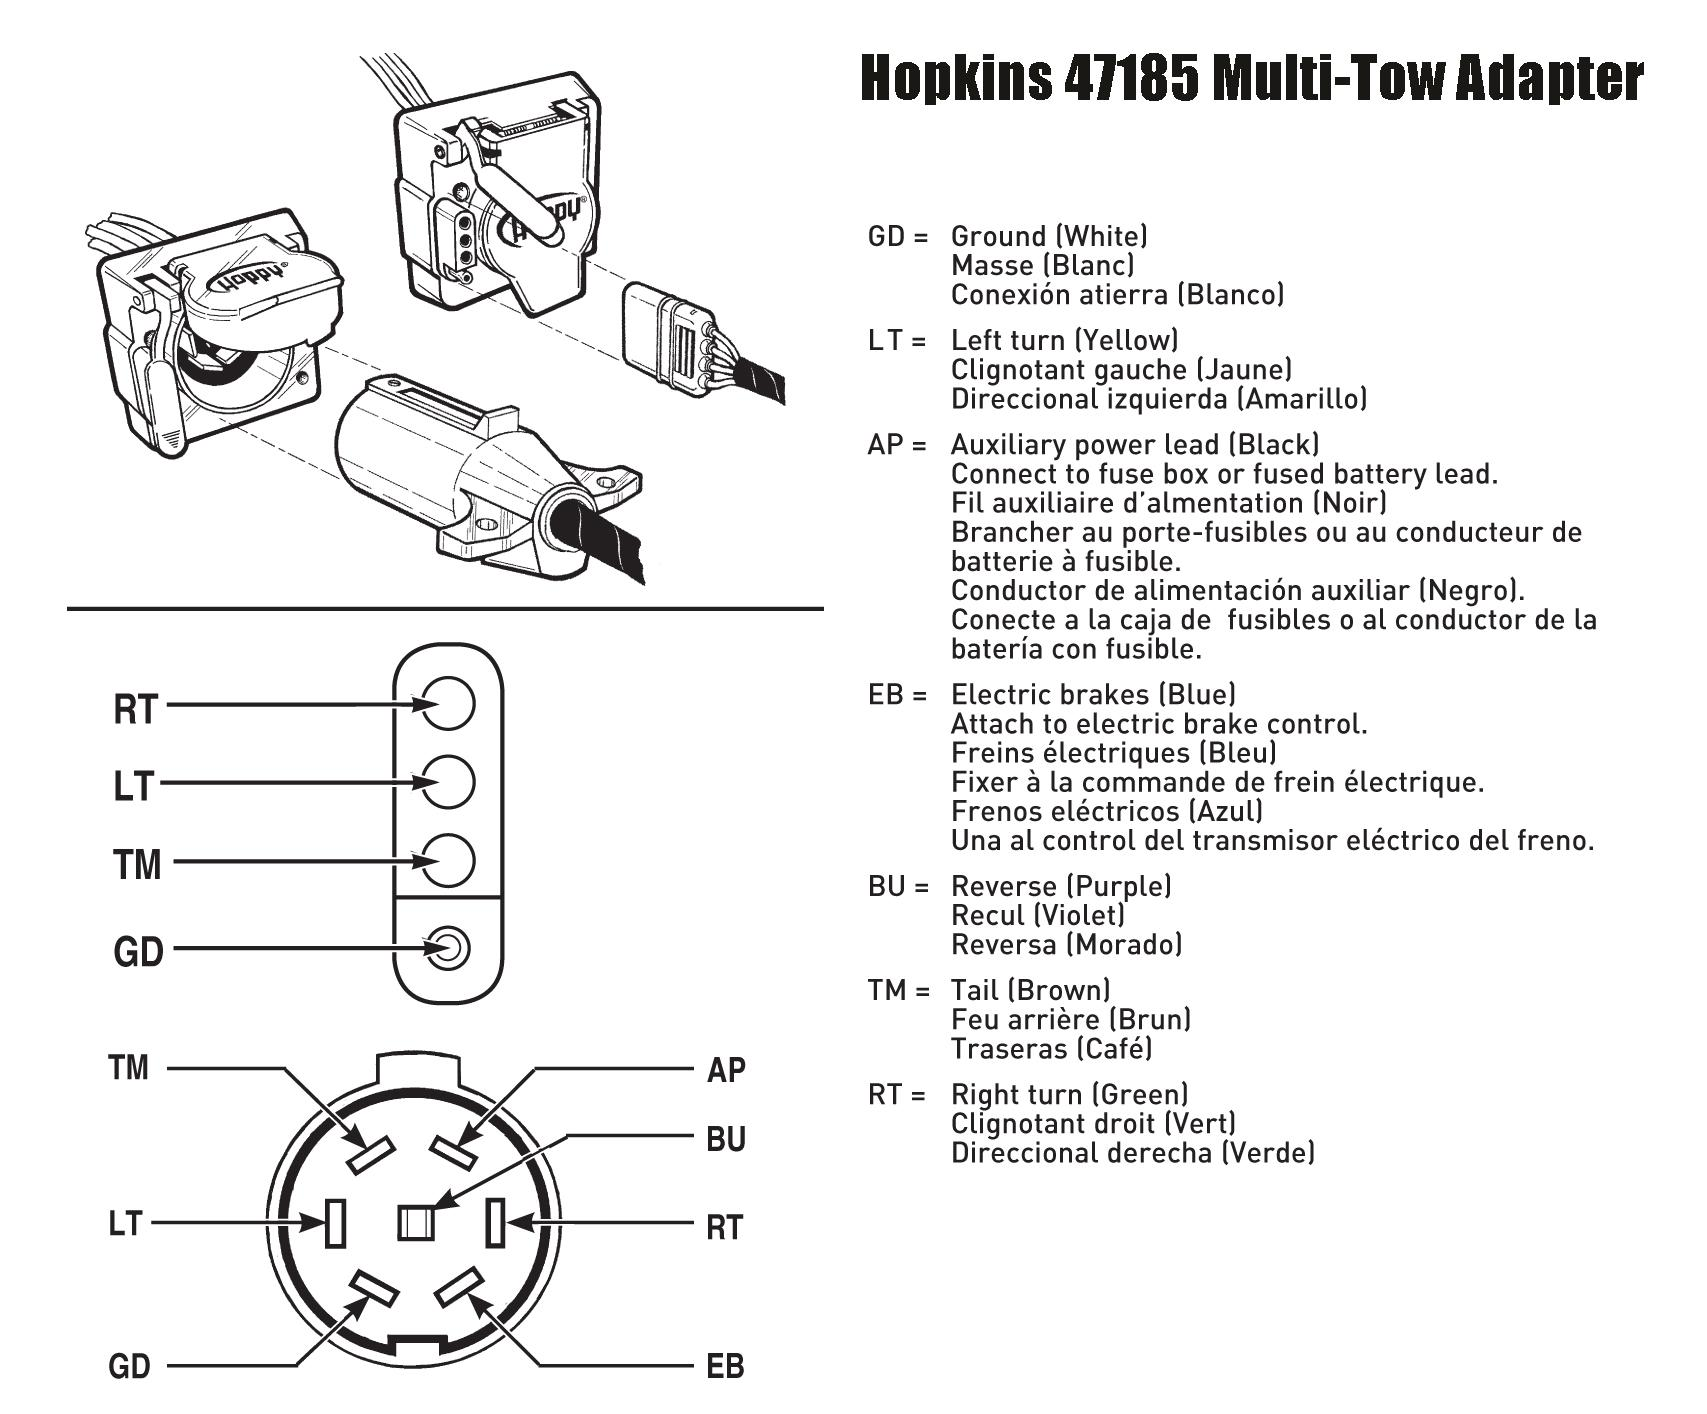 48470 Hopkins 7 Way Wiring Diagram Download Diagrams Pole Images Gallery